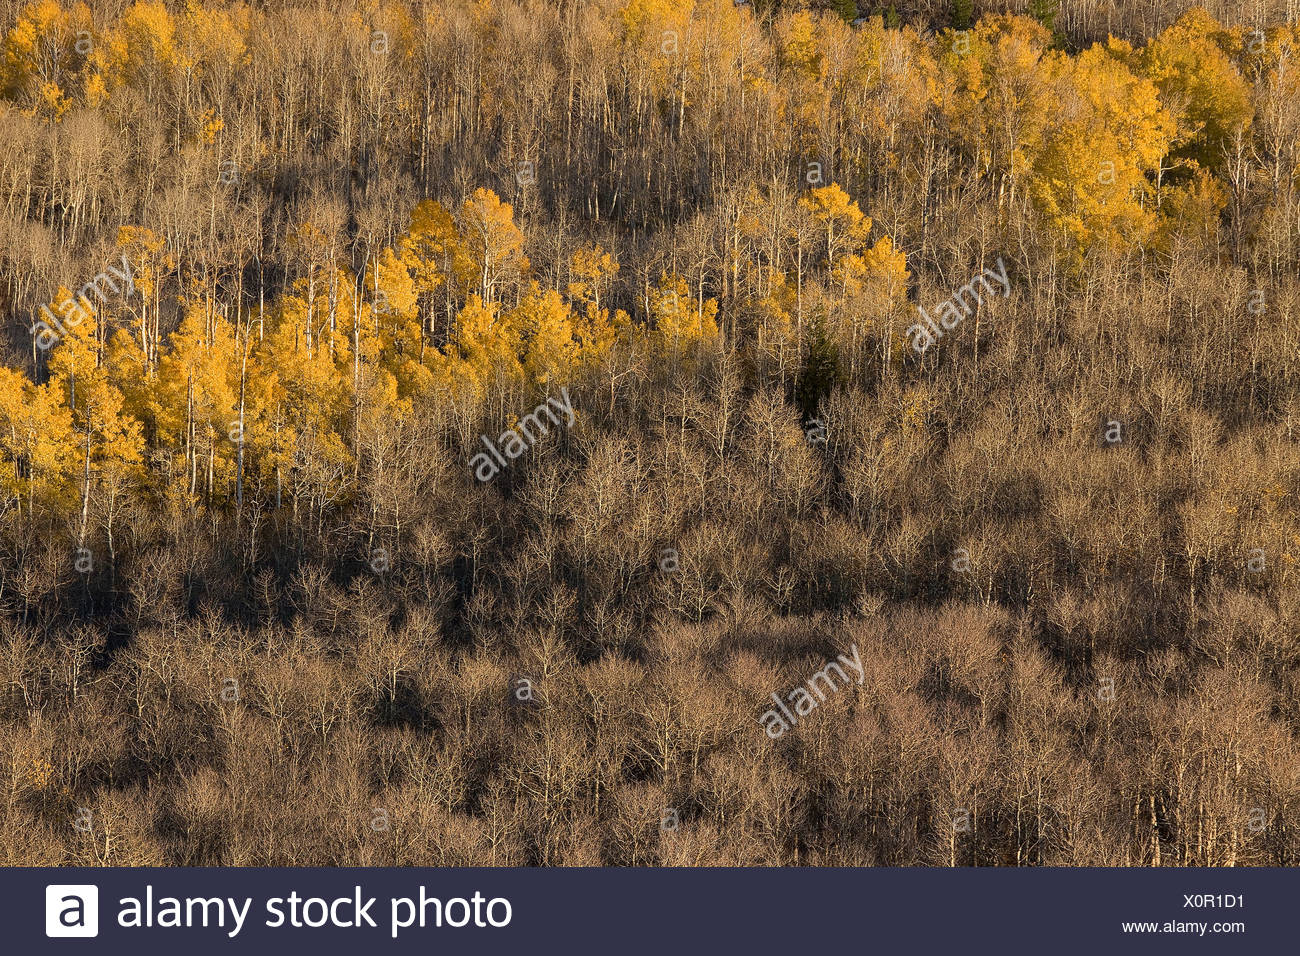 An aspen forest of yellow autumn leaves in the Sierra mountains of California - Stock Image